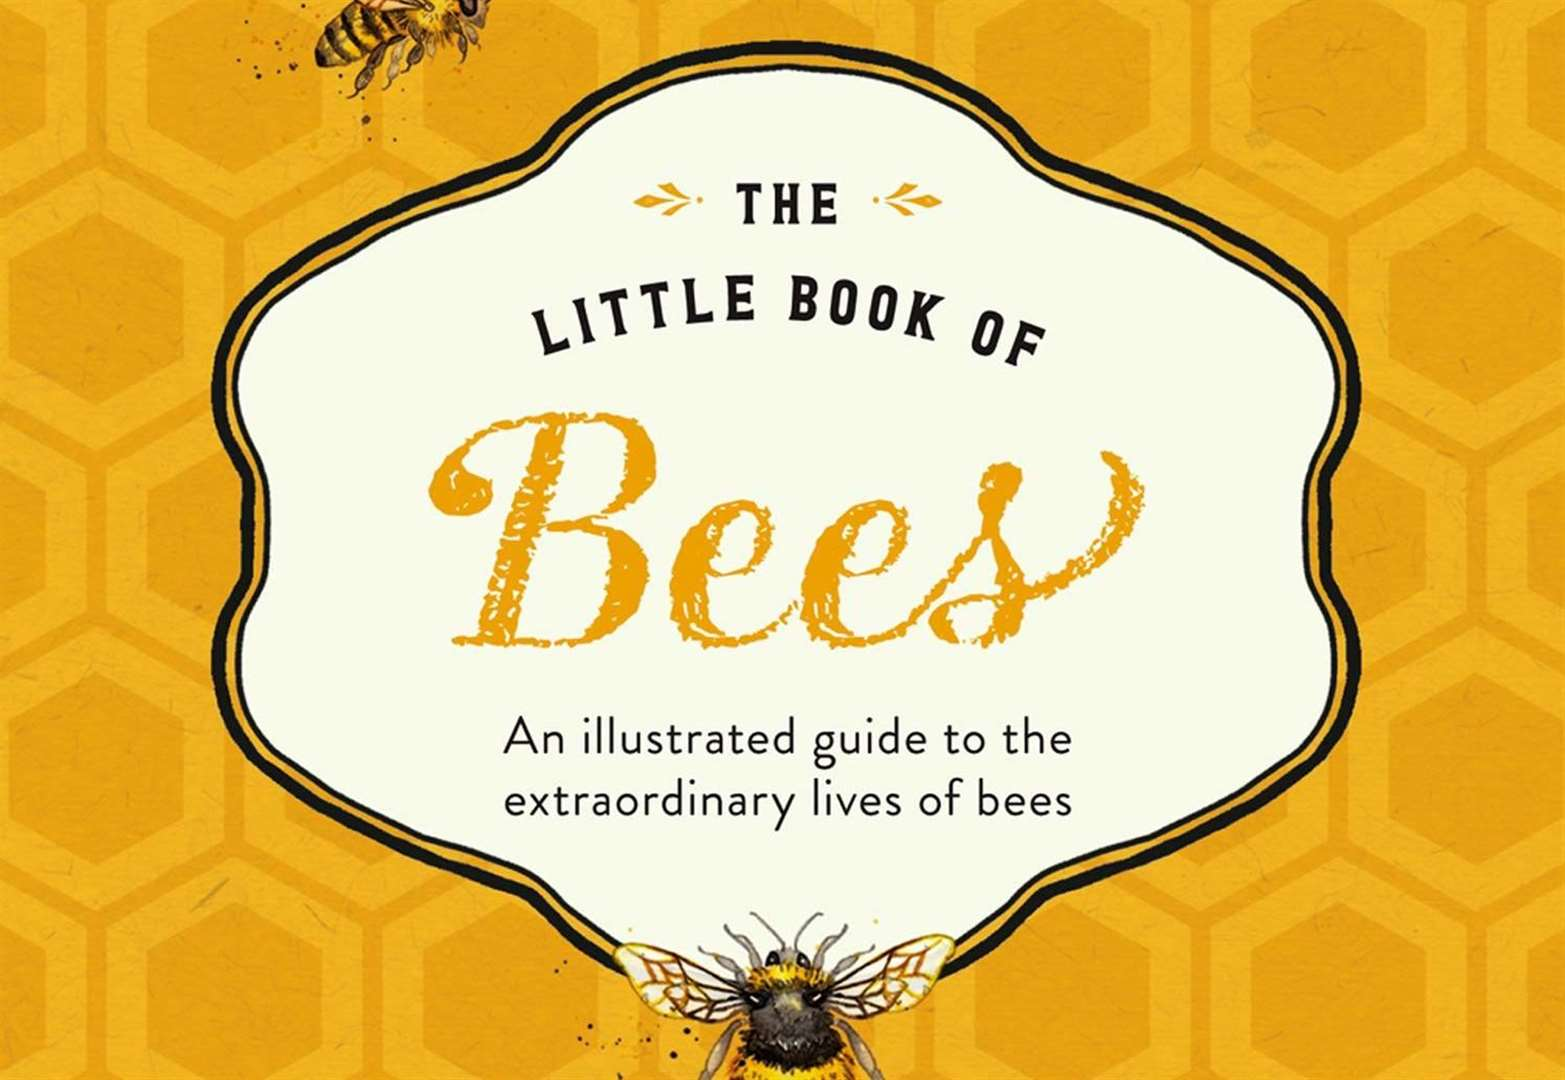 Book of the Week: The Little Book of Bees by Hilary Kearney